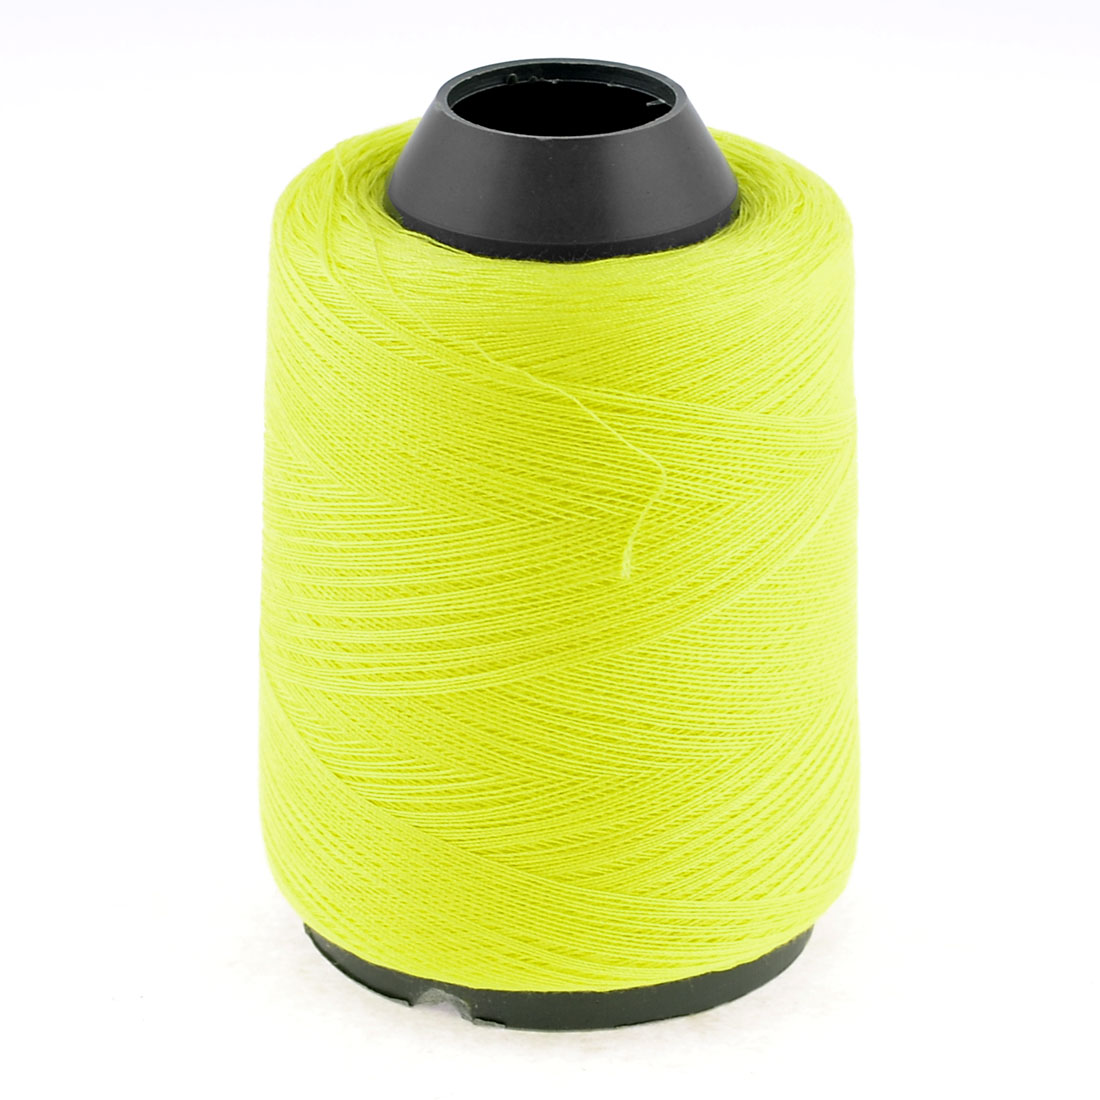 Yellow Polyester Darning Stitching Sewing Line Thread Reel for Tailor